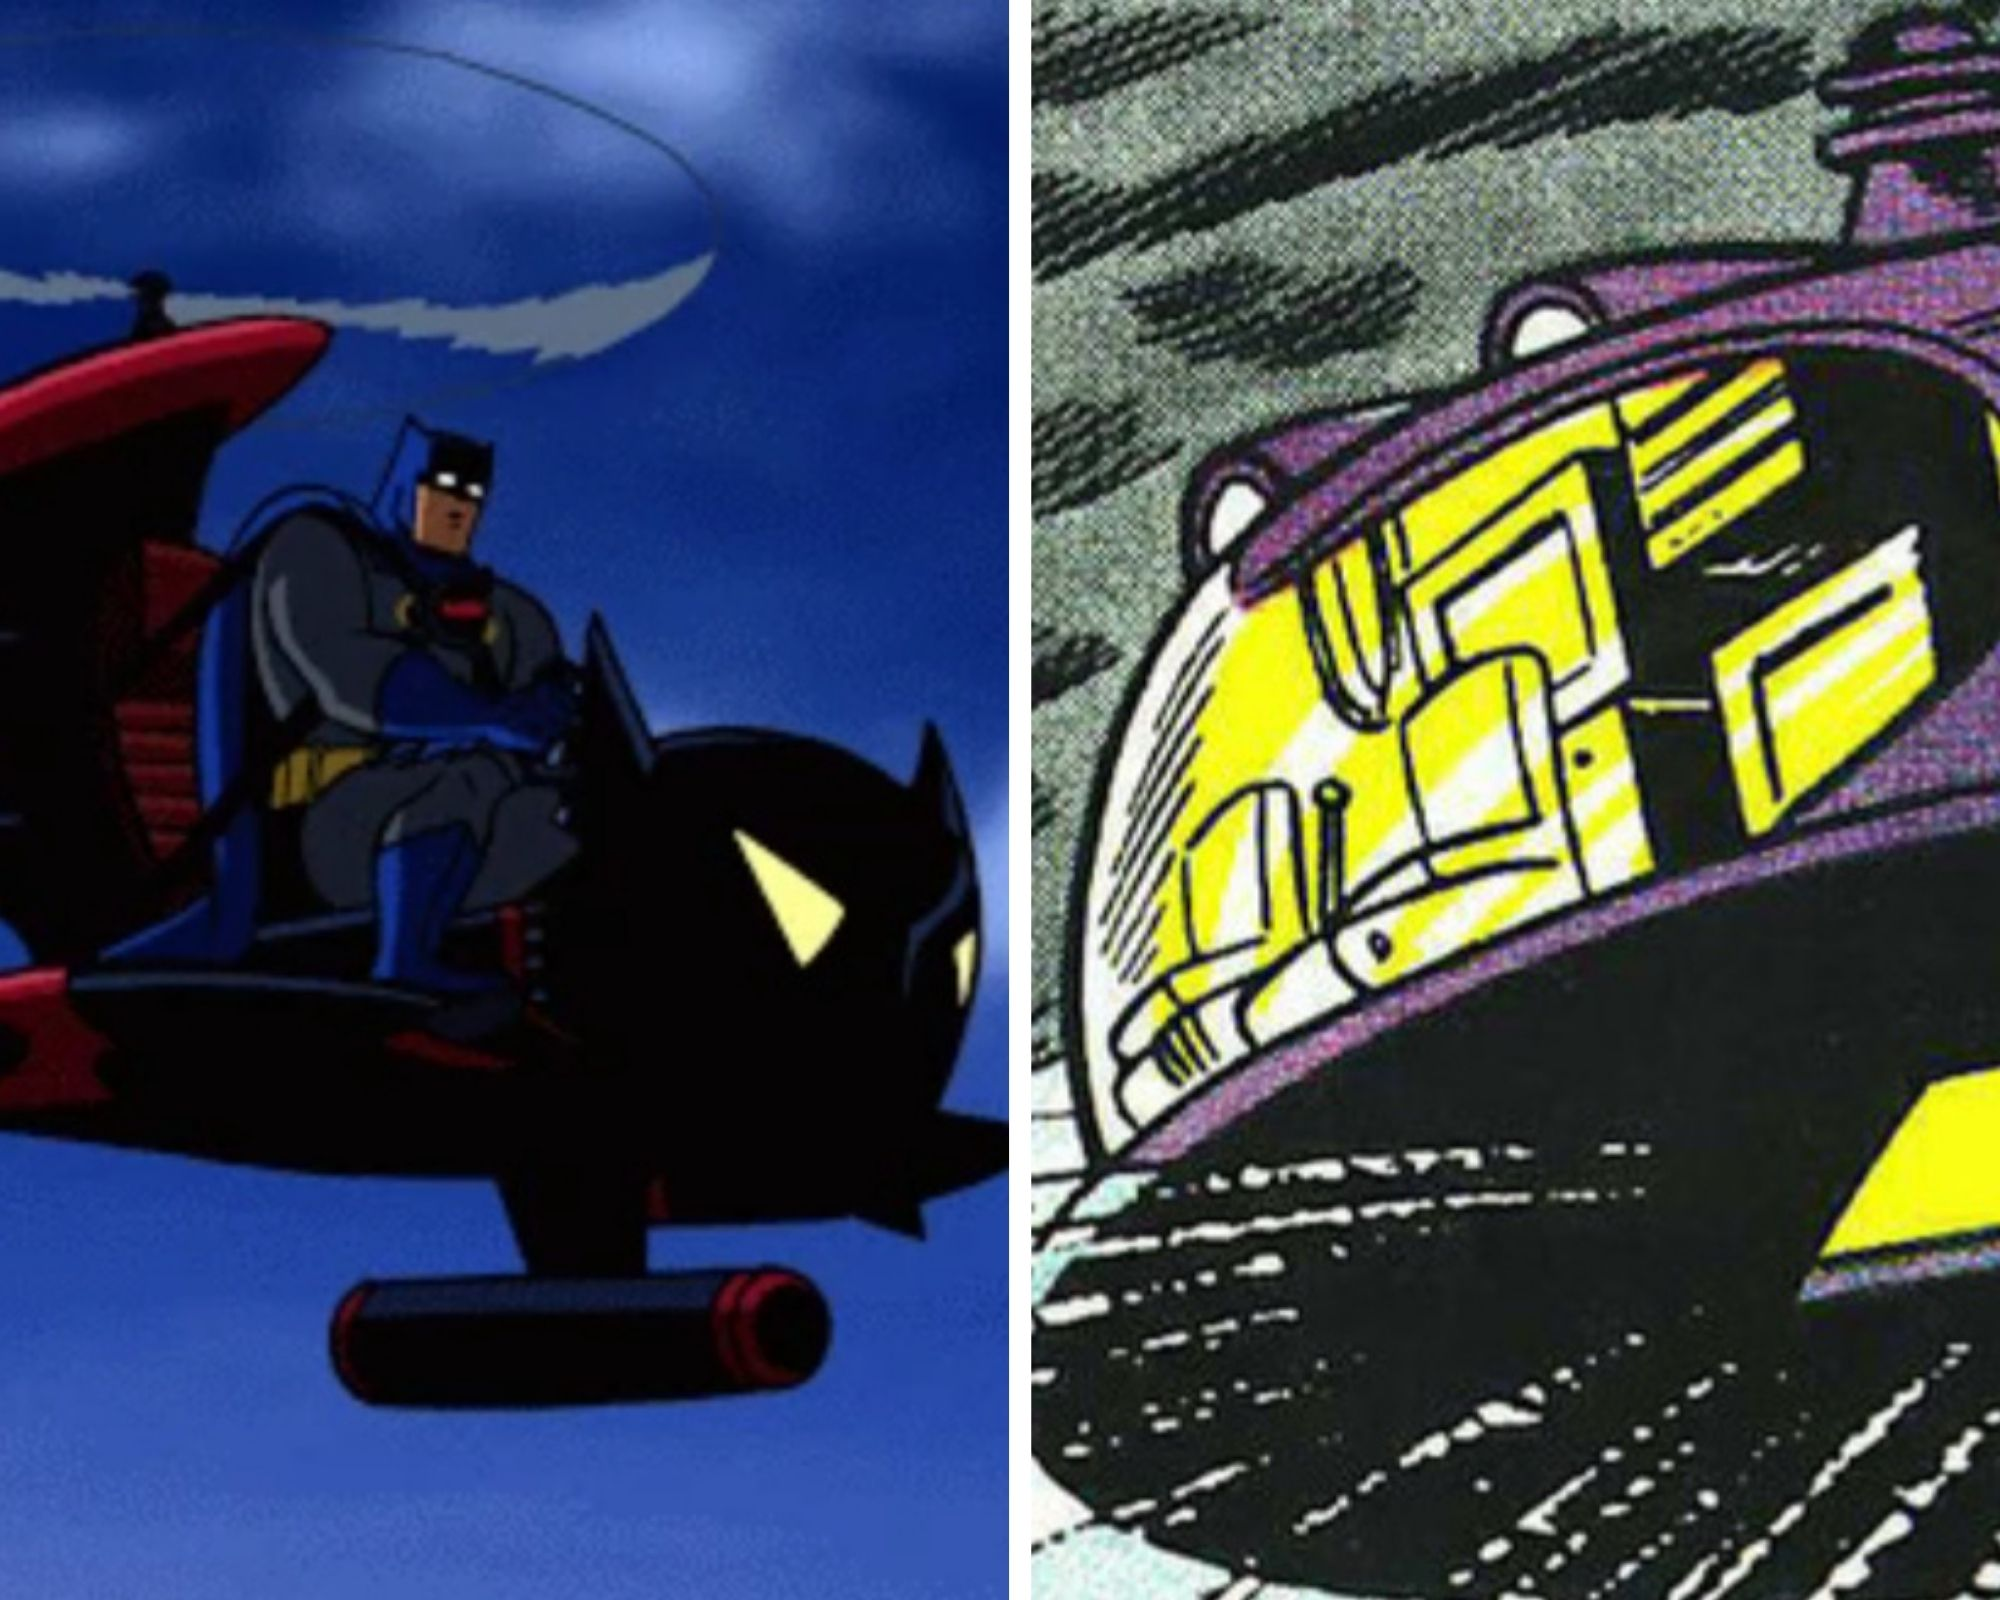 Flying Batcave and Whirly-Bat